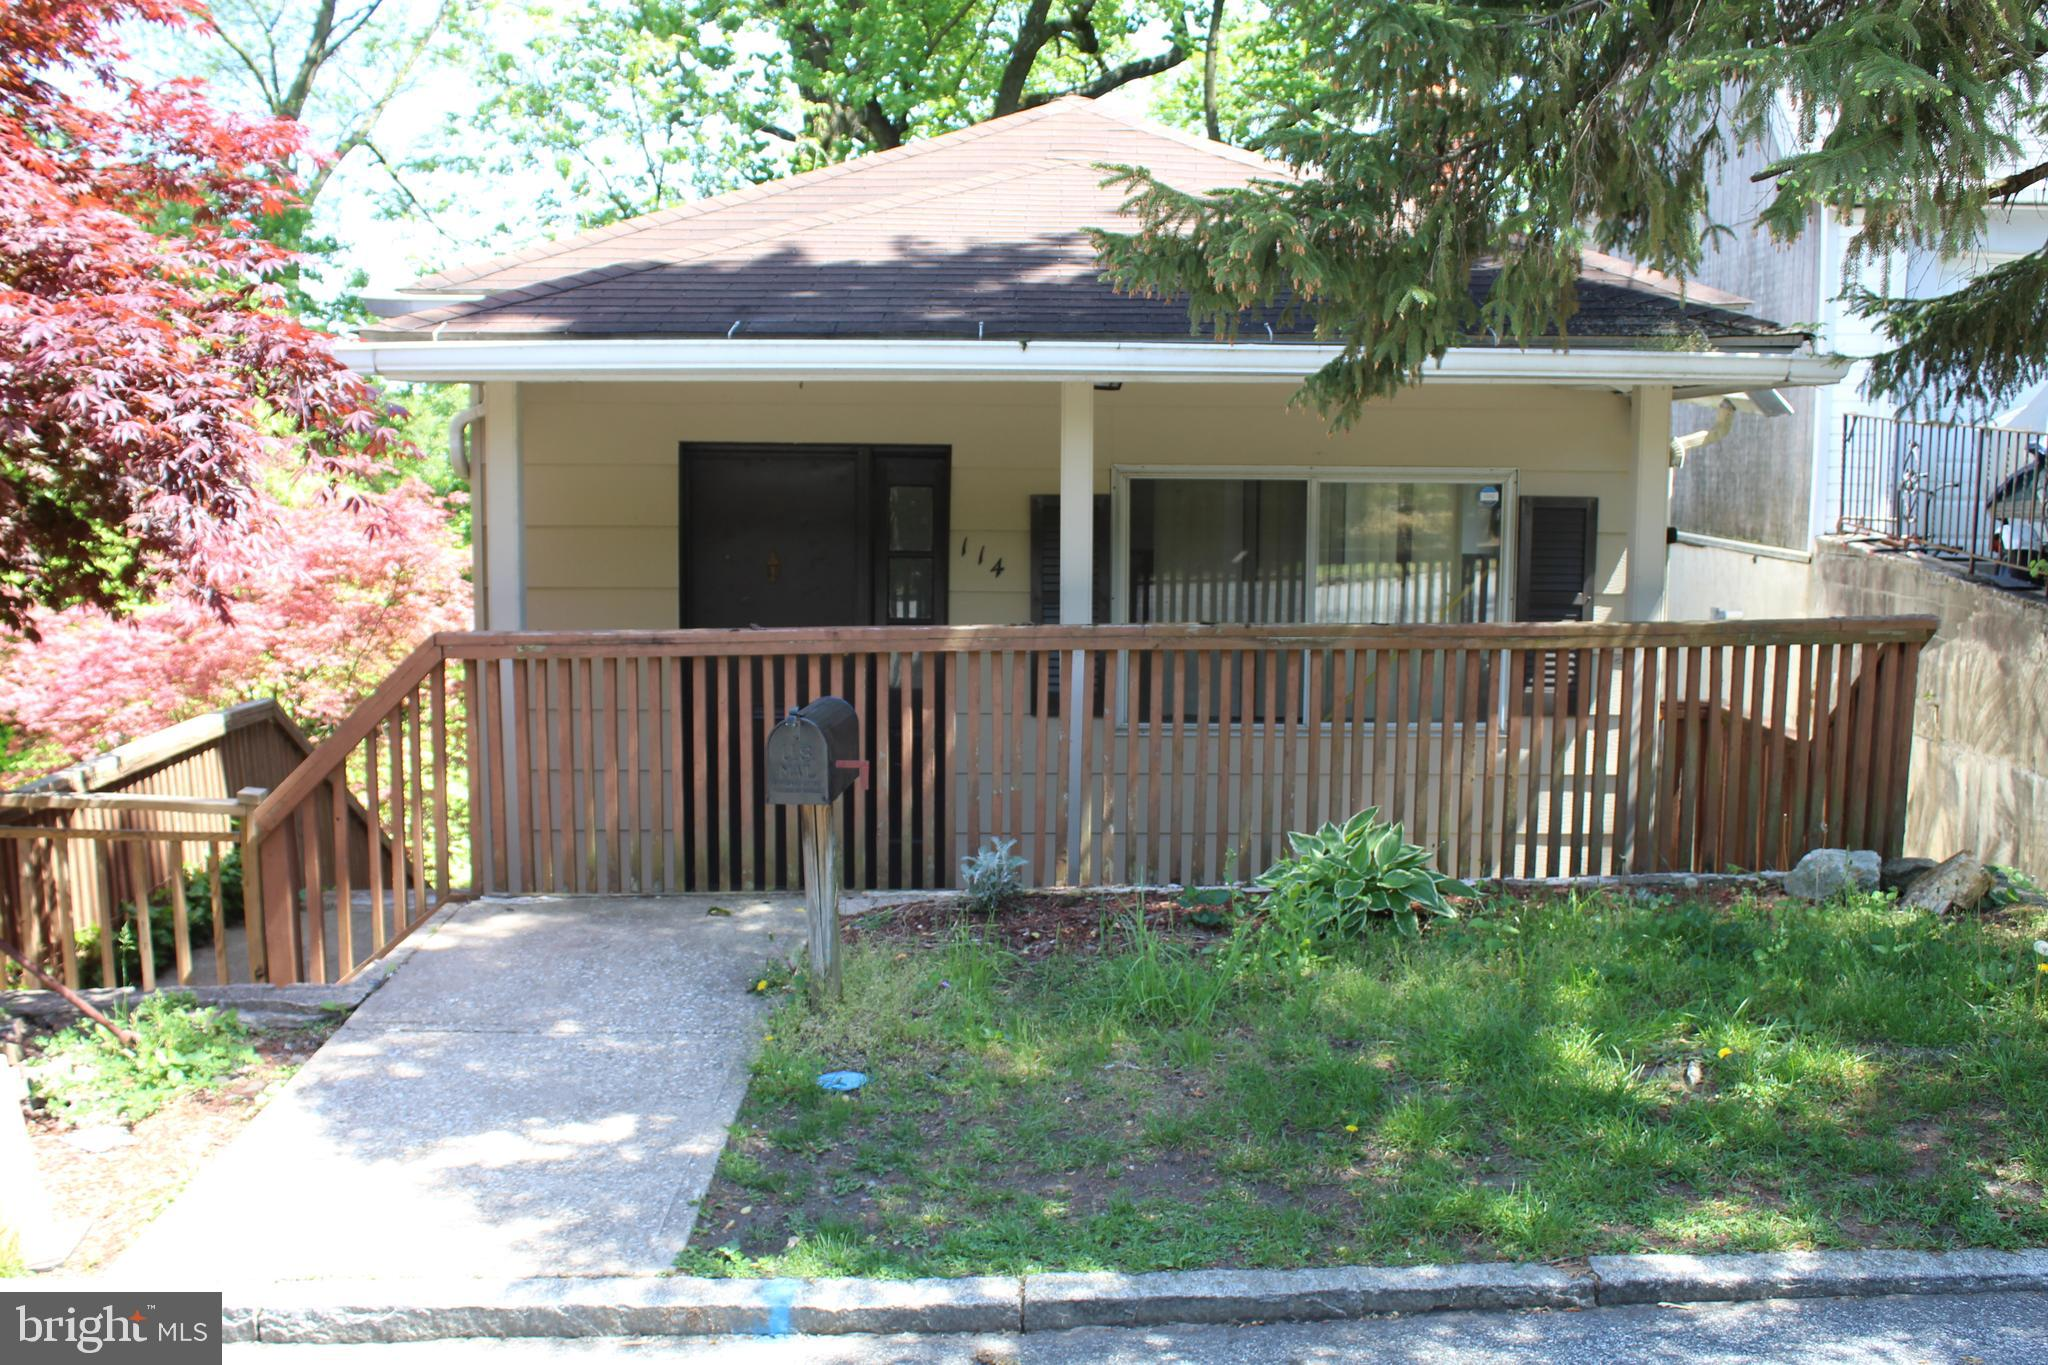 THIS IS AN AS-IS SALE, AND BUYERS SHOULD DUE THEIR DUE DILIGENCE PRIOR TO SUBMITTING AN OFFER.  ALL OFFERS ARE DUE BY 3:00PM, SATURDAY 5/15/21.  Single home in need of updating, in scenic Belmont Hills.  Enter from the front porch, into the living room, with kitchen to the right.  To the rear we have a full bath, and one bedroom.  On the lower level, we have two bedrooms, a large family room that could be converted to another bedroom, and laundry.  The basement is unfinished, but has an exit to the side.  On the side and rear, we have a spacious deck.  NOTE:  The chandelier at the top of the stairs is not included in the sale.  Washer/Dryer/Refrigerator are included in the sale.